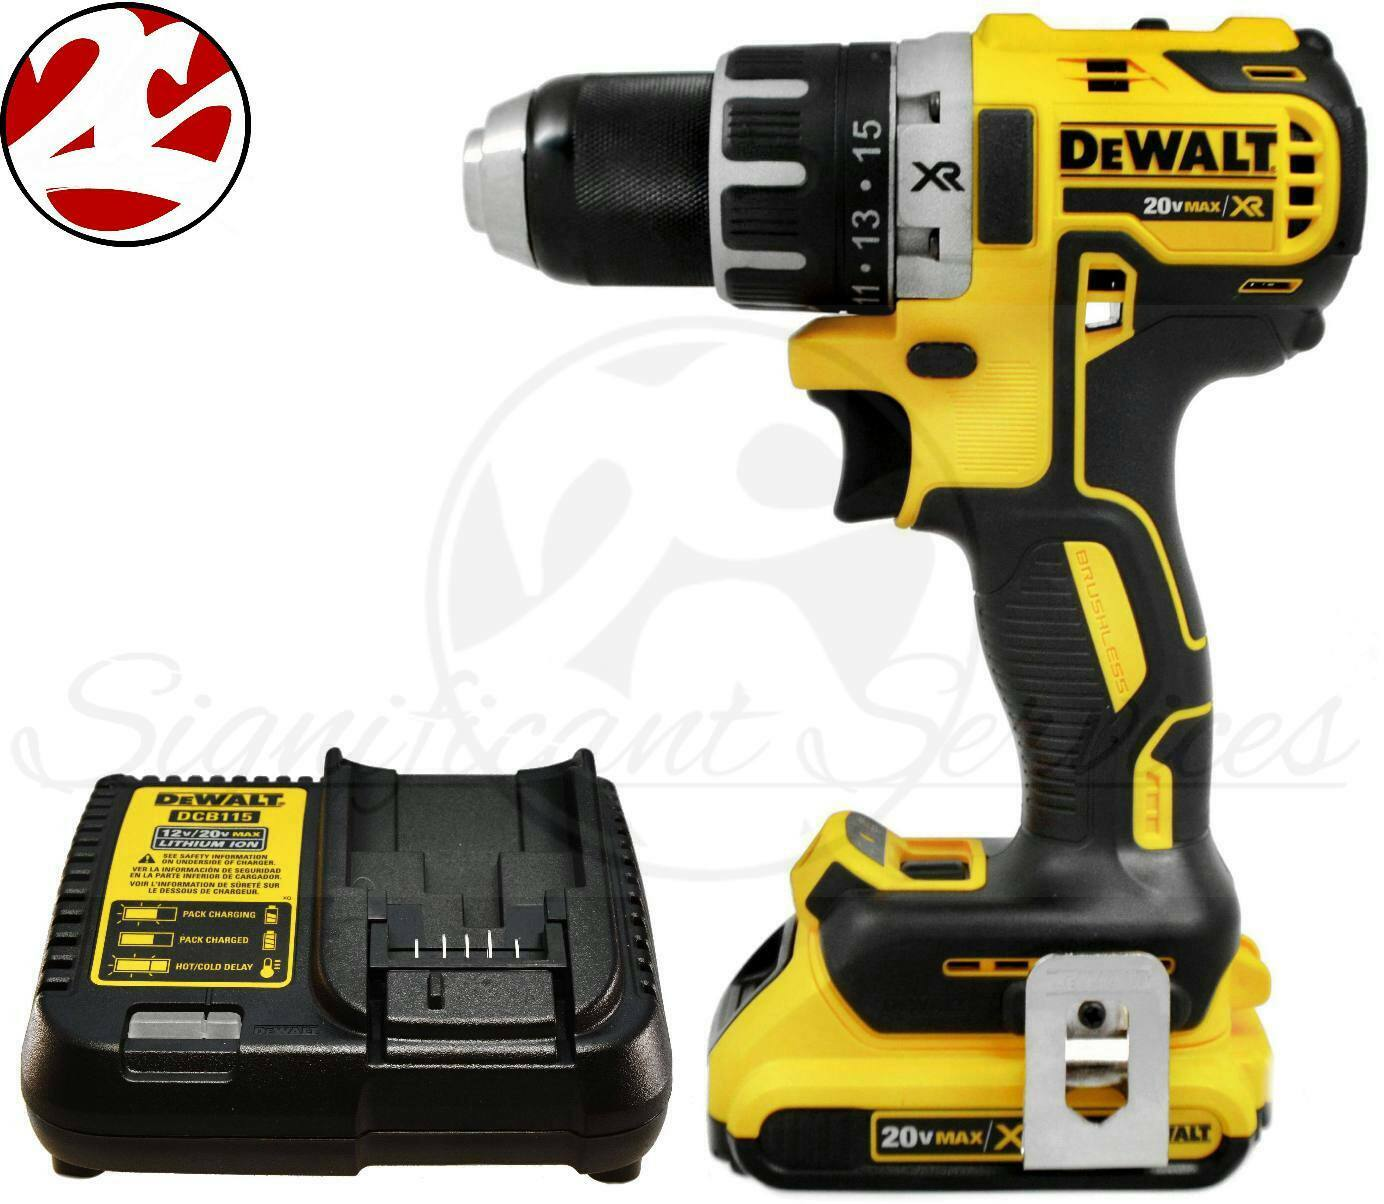 R18pdbl 0 likewise Milwaukee M18fsgc 202x Fuel Drywall Screw Gun together with Makita 18v Lxt Cordless Folding Bicycle furthermore 7 Inch Electric Lawn Edger Trencher Wg896 also Kwt 001 02 Kielder Cordless Brushless Drill Driver 2 Battery. on brushless motor for battery powered drill